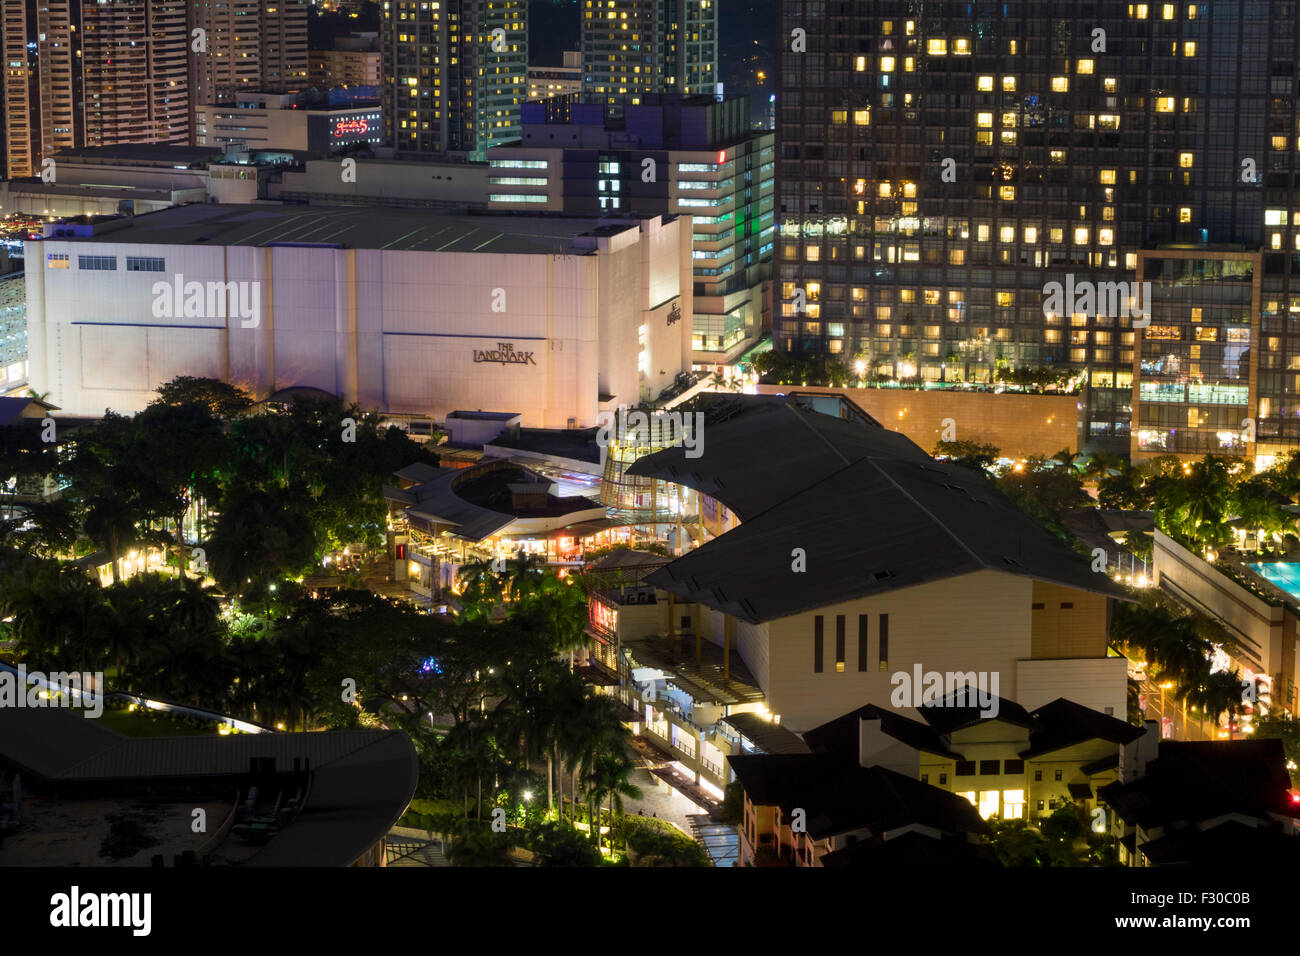 Manila, Philippines - Sept 25, 2015 Elevated view of Greenbelt Shopping Center in Makati City, Metro Manila - Philippines. - Stock Image